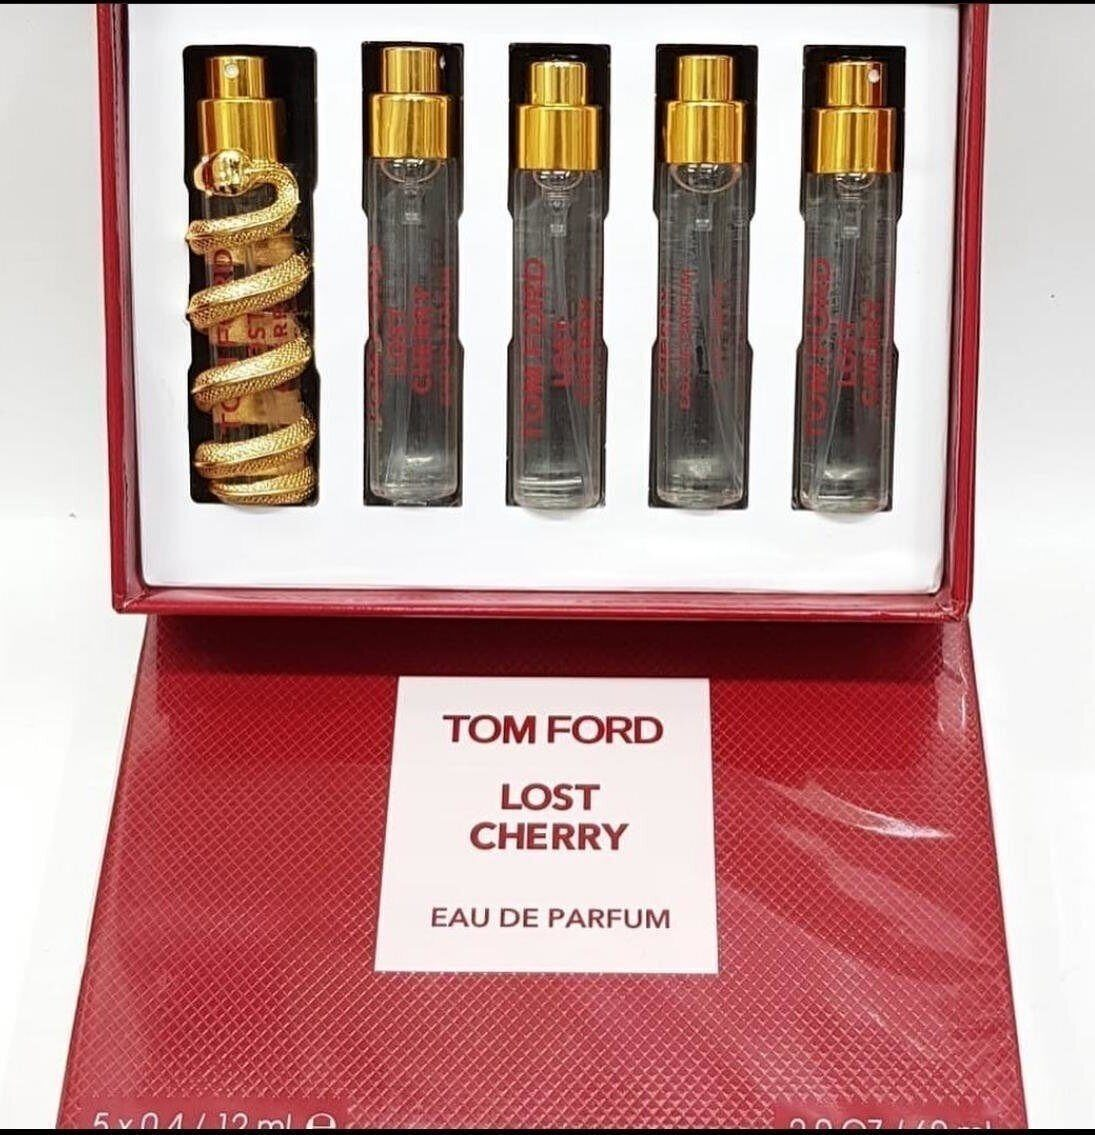 Набор парфюмTom Ford Lost Cherry не дорого 5х12 ml.